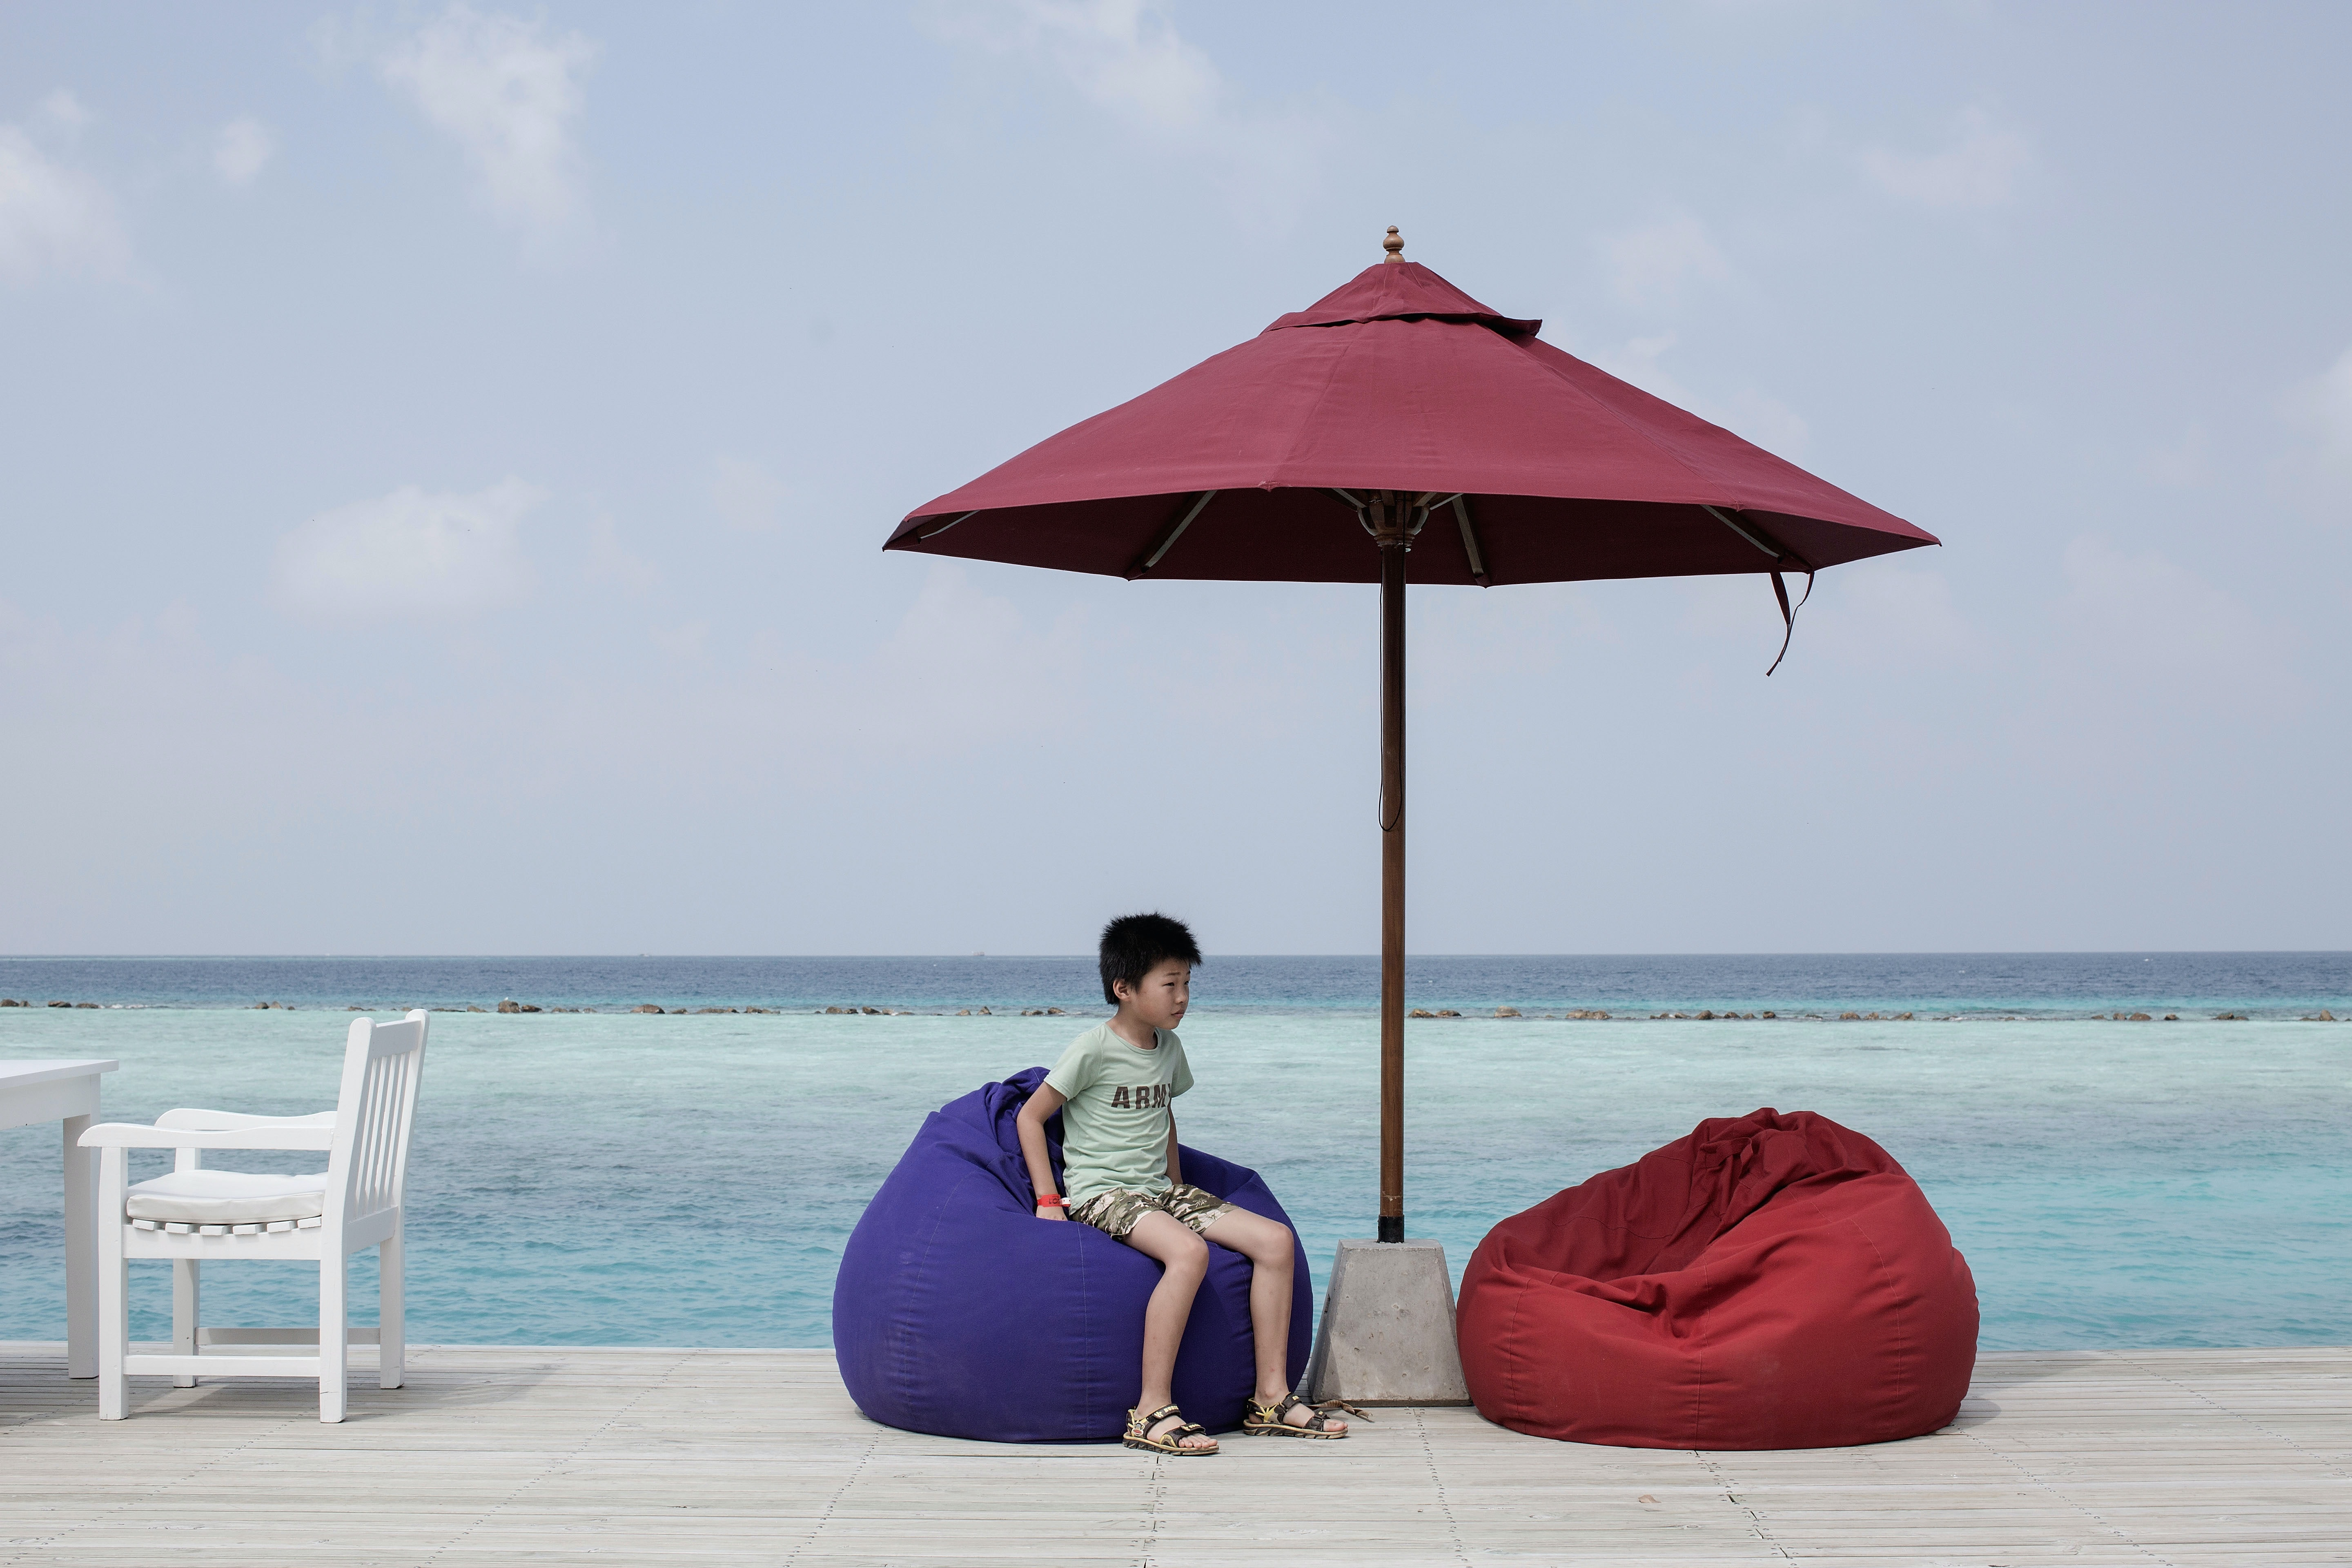 Bean Bag Chairs Are Recalled By The Millions And The Reason